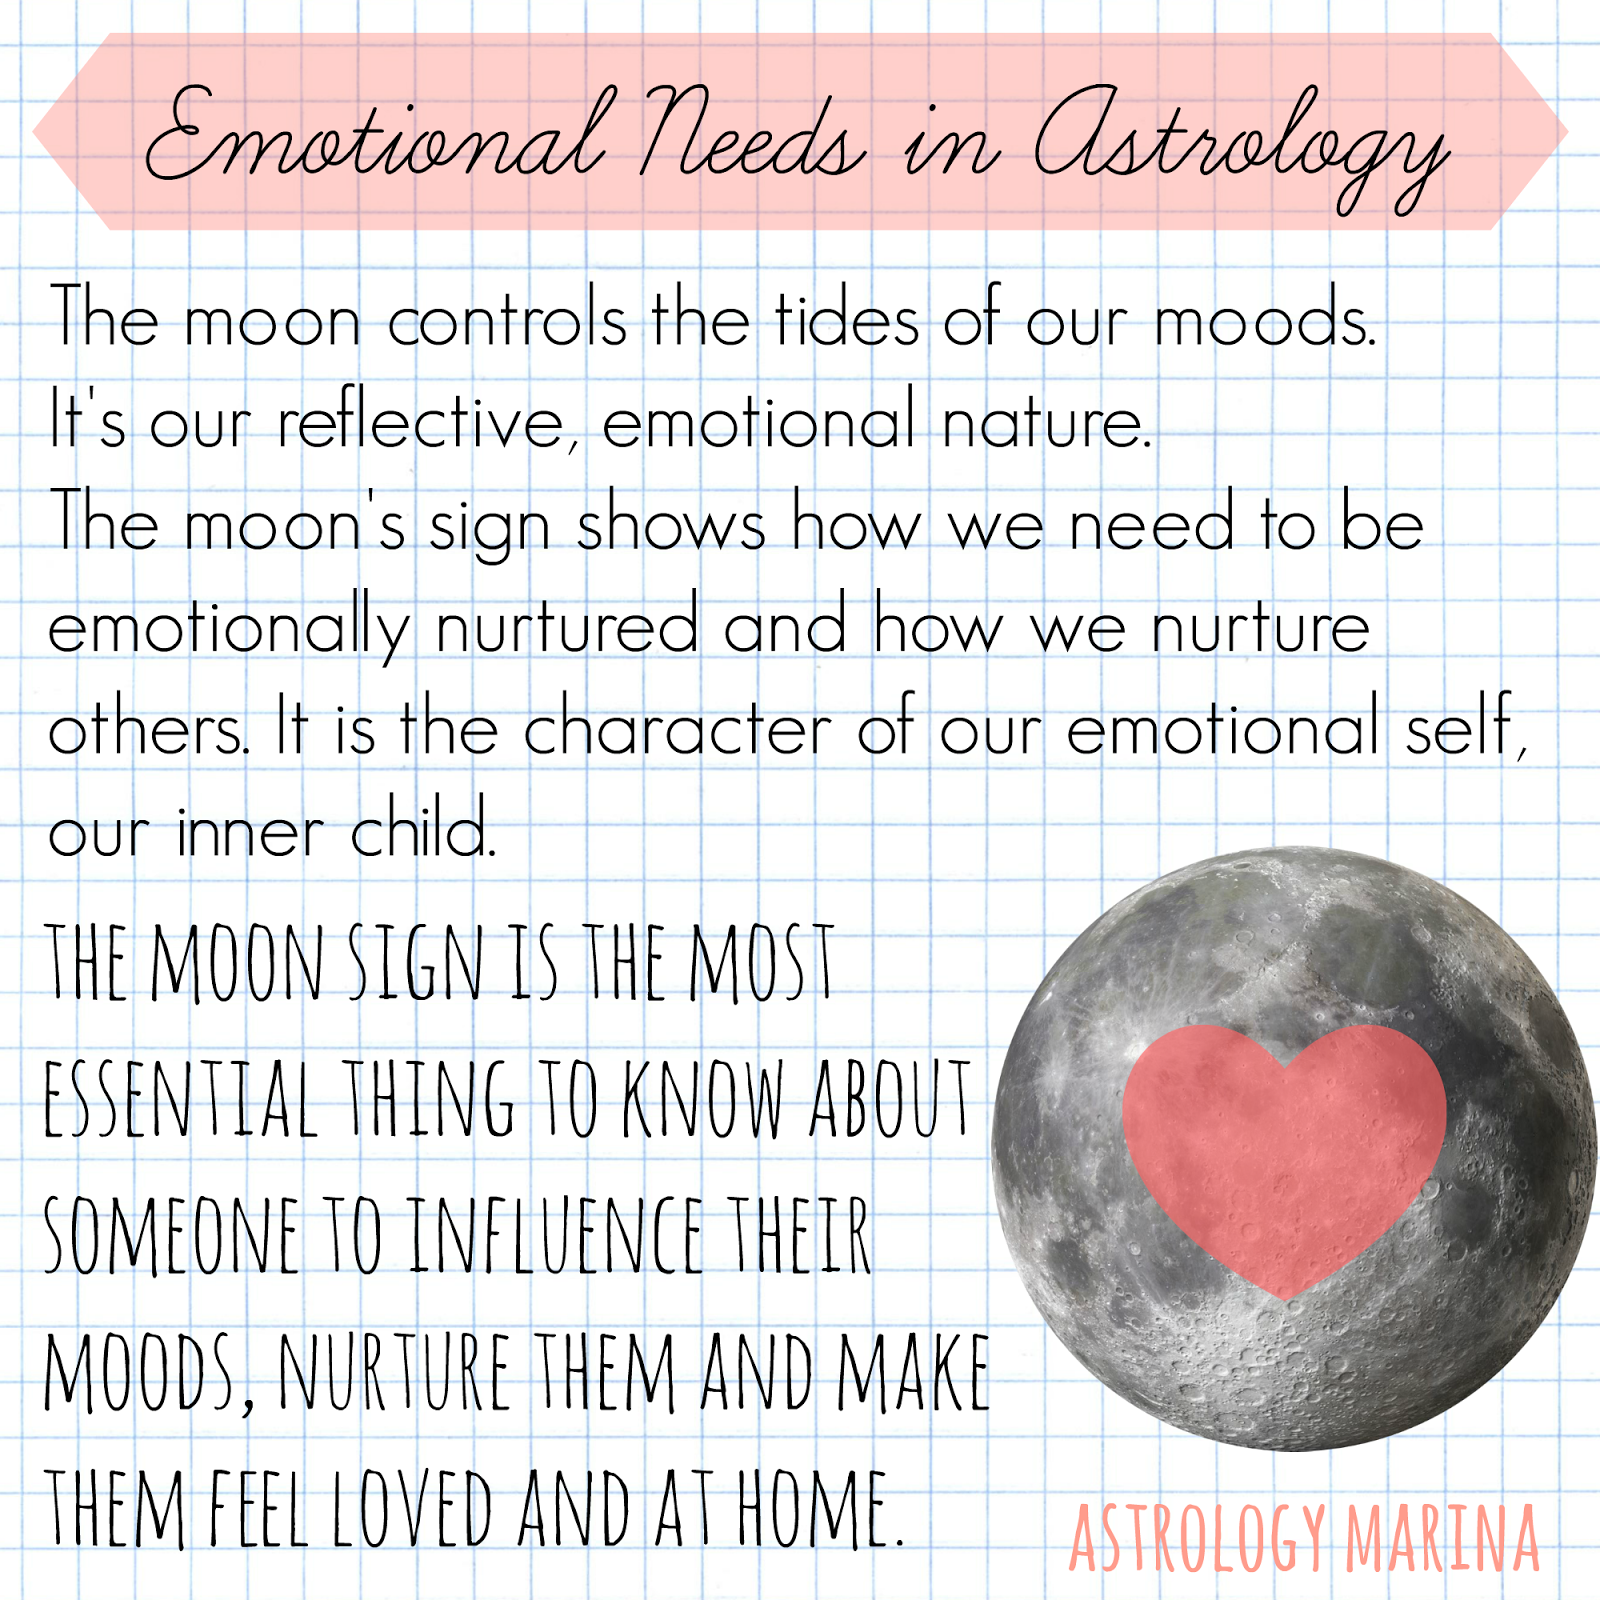 Marinas astrological journal 3 things each zodiac sign needs in a marinas astrological journal 3 things each zodiac sign needs in a relationship the moon nvjuhfo Image collections